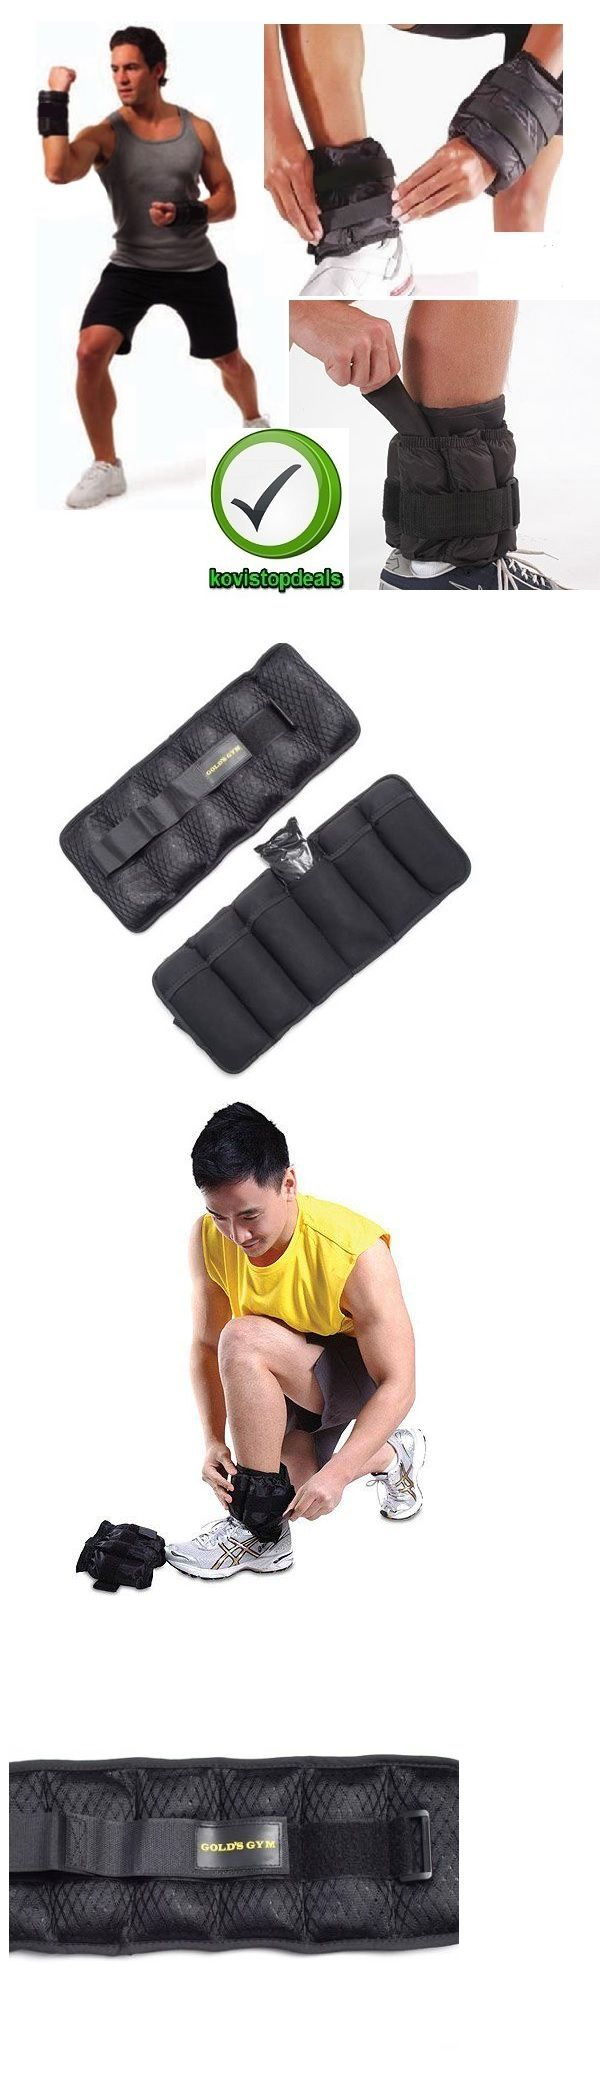 Wrist and Ankle Weights 137866: Golds Gym Ankle Weights Adjustable And Arm Leg Wrist Box Running Pair Of 10 Lb BUY IT NOW ONLY: $32.67